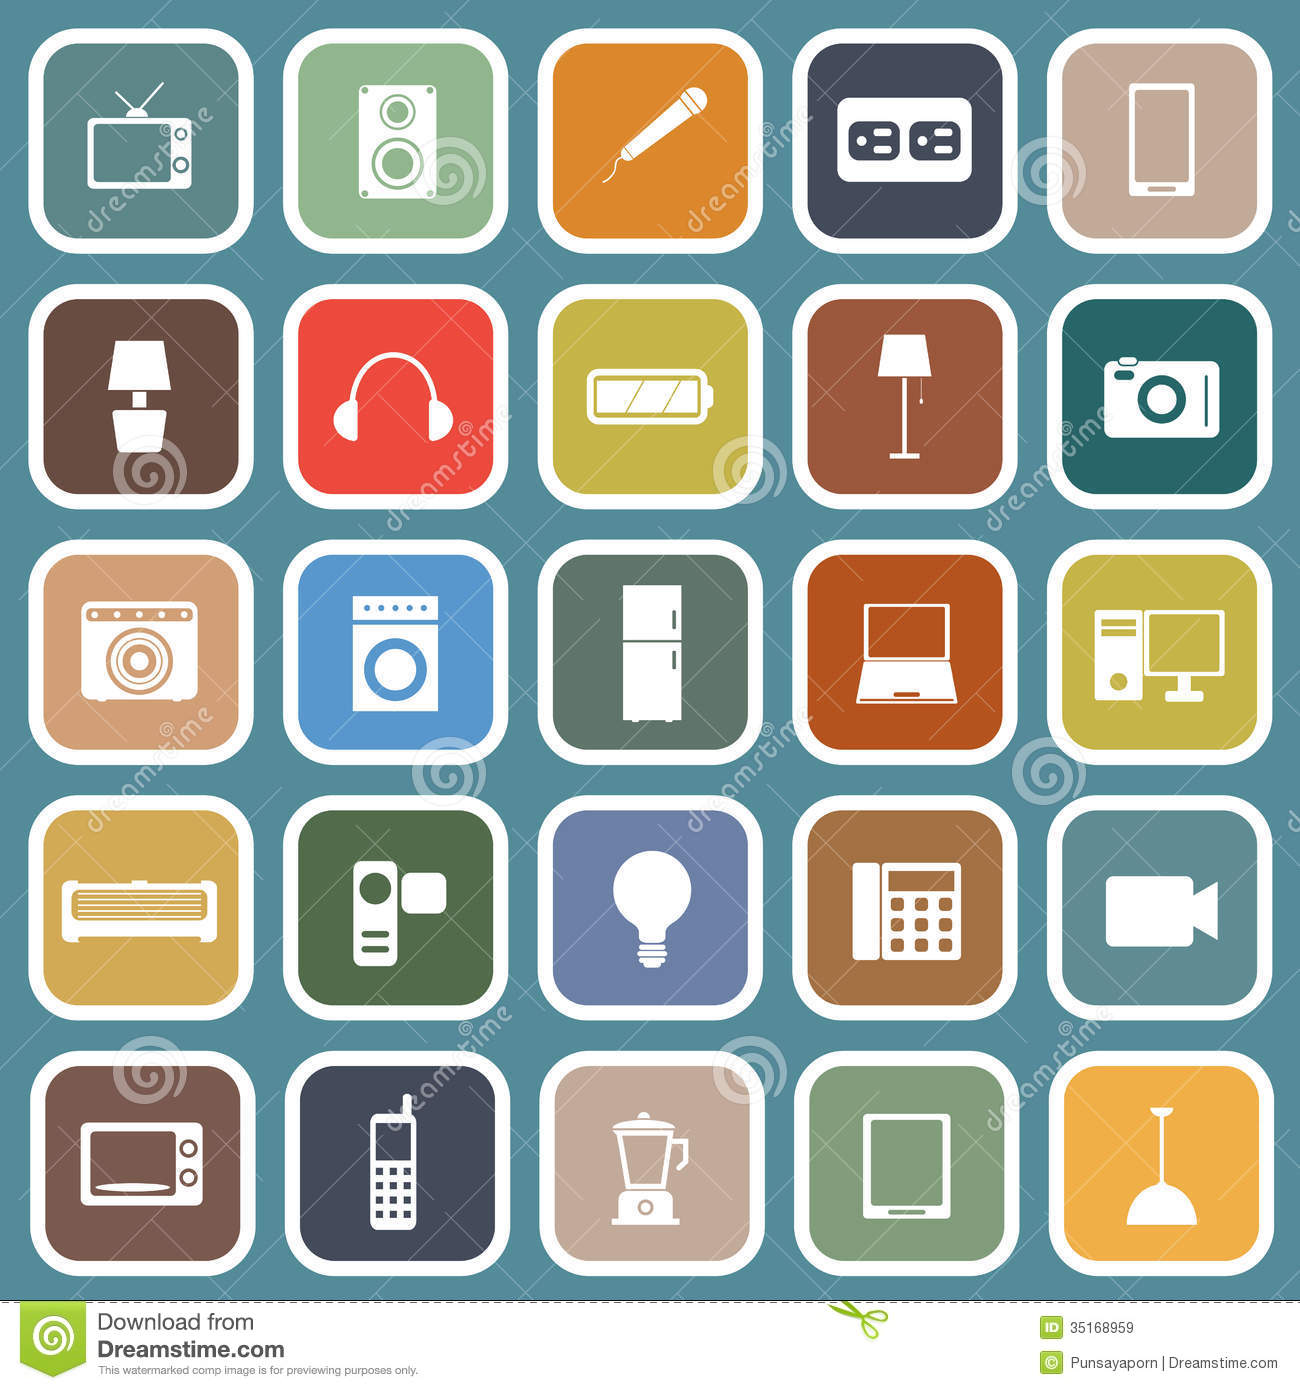 electrical plan icons    electrical    machine flat    icons    on blue background royalty     electrical    machine flat    icons    on blue background royalty